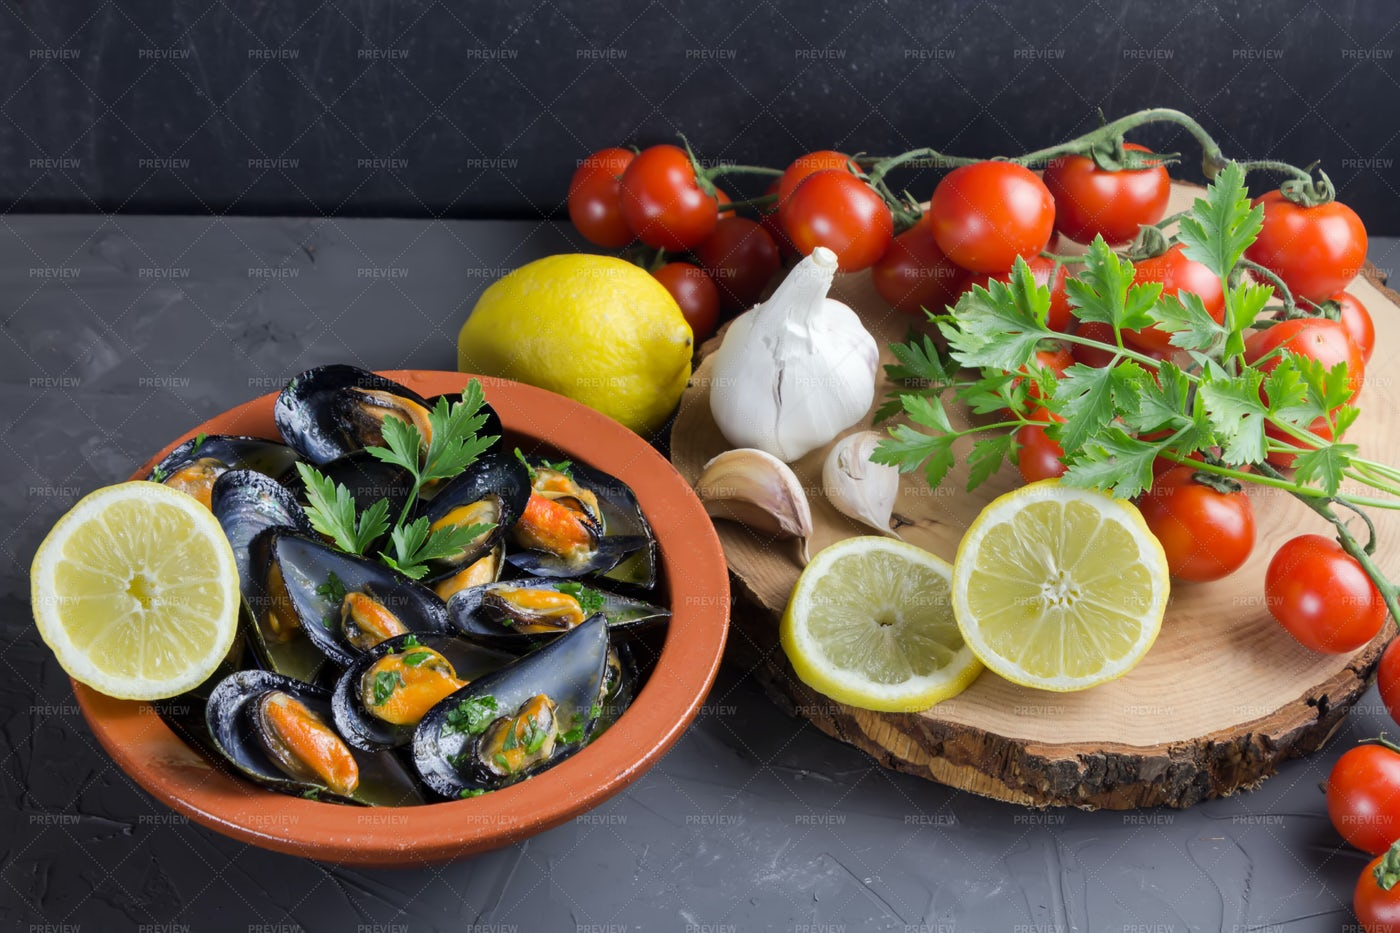 Mussels In A Clay Bowl: Stock Photos